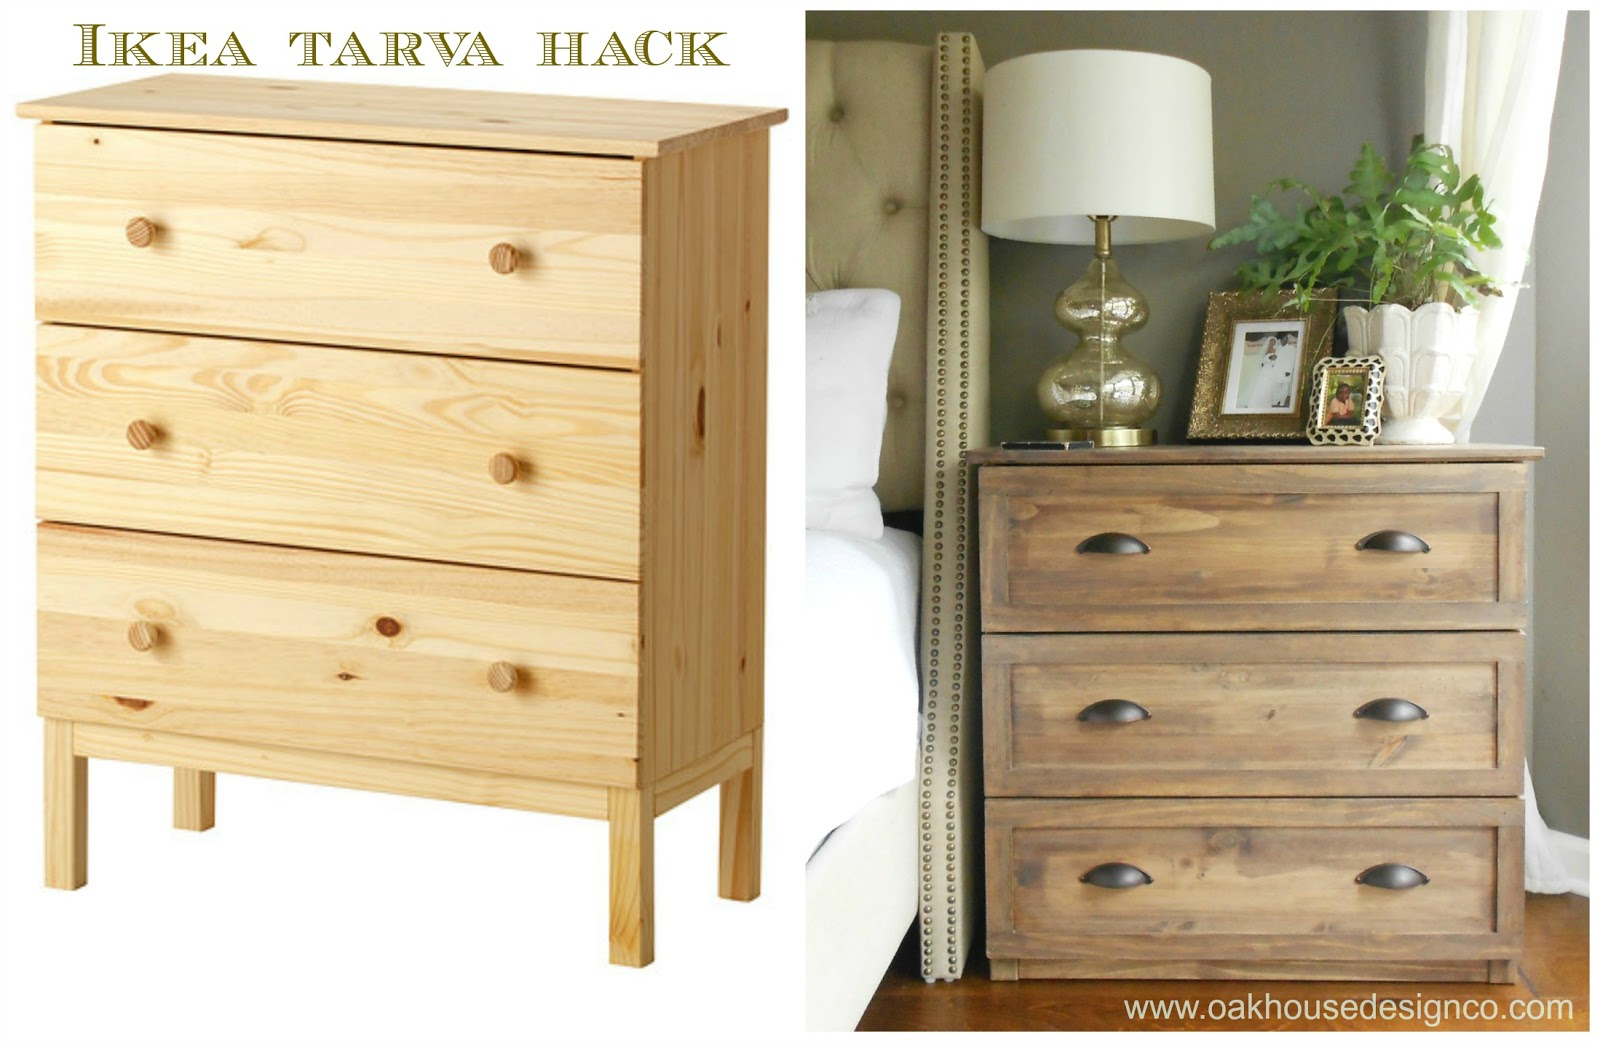 the new nightstands an ikea tarva hack oak house design co. Black Bedroom Furniture Sets. Home Design Ideas